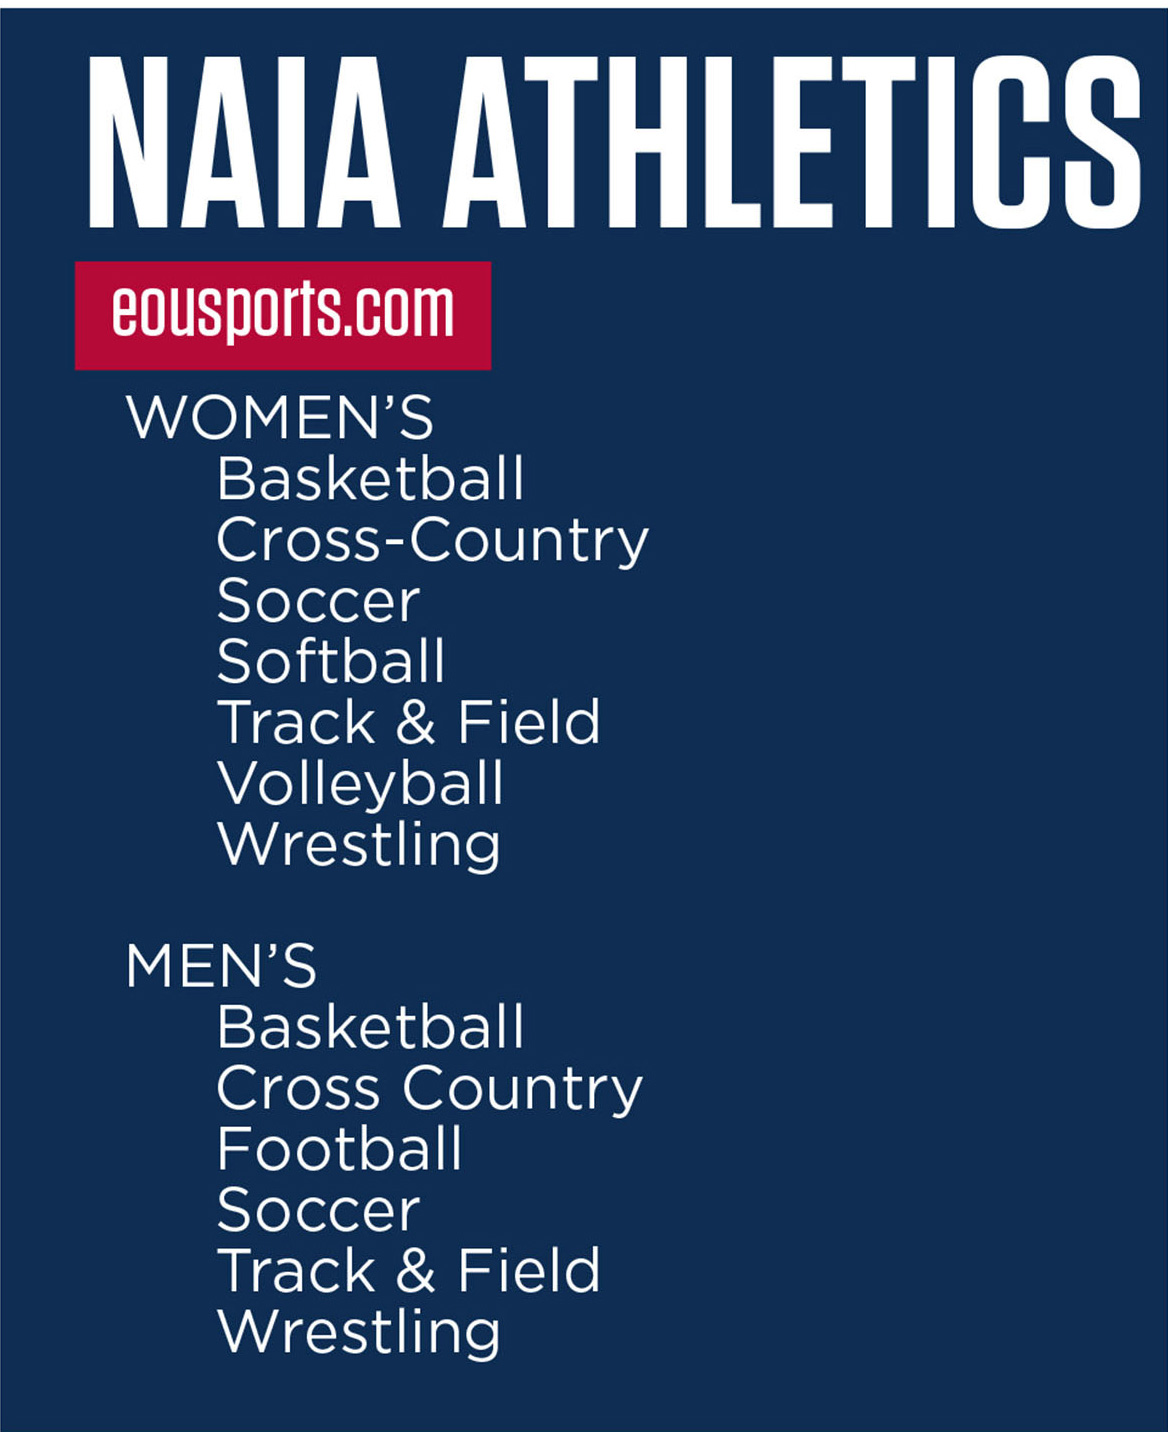 Athletics programs at EOU compete in the NAIA and Frontier Conferences. They include Basketball, Cross-Country, Soccer, Softball, Track & Field, Volleyball, Football, and Wrestling